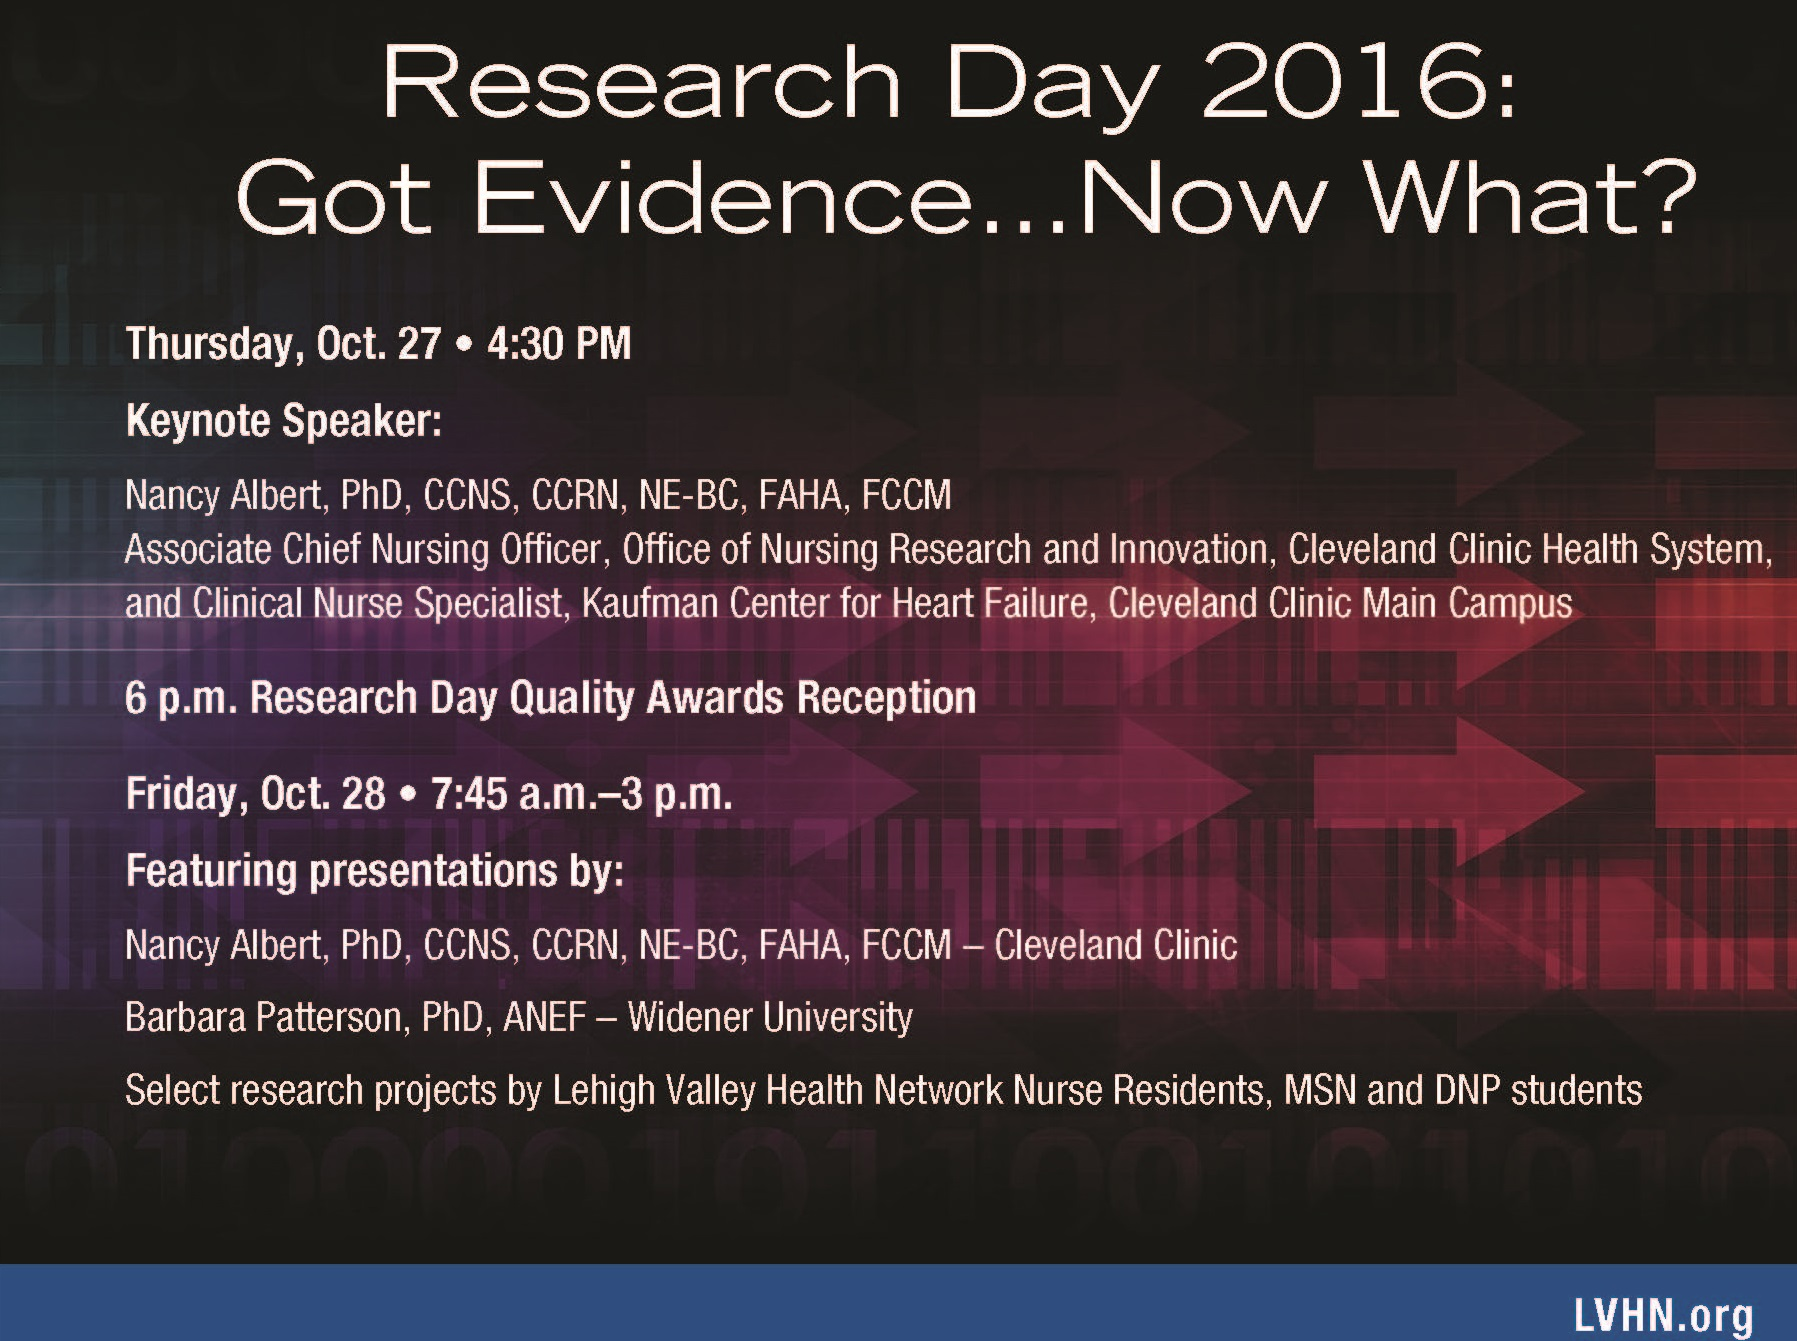 Research Day 2016: Got Evidence.... Now What?